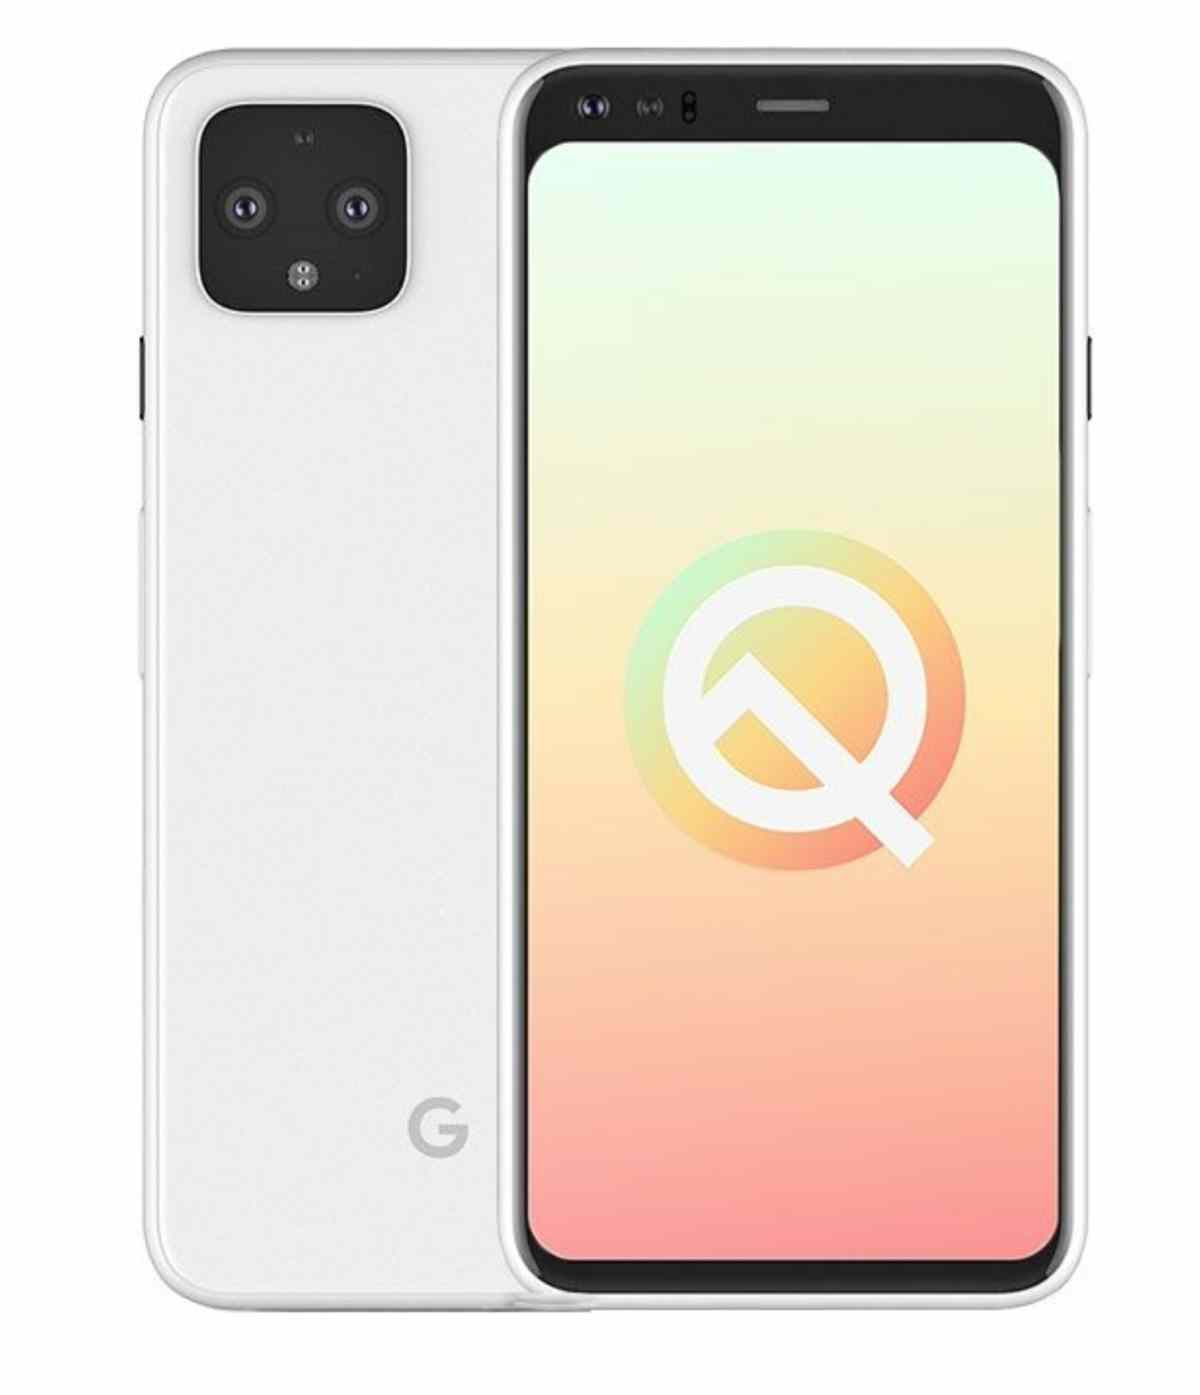 Google pixel 4 XL, google pixel 4 xl price in Nigeria, how much is google pixel 4 xl in Nigeria, price of google pixel 4 xl in USA, Google pixel 4 xl specs and price, google pixel 4 xl specs, google pixel 4 xl specifications, Google pixel 4 xl price in India, Google pixel 4 xl and price in Nigeria, Google pixel 4 xl in Nigeria